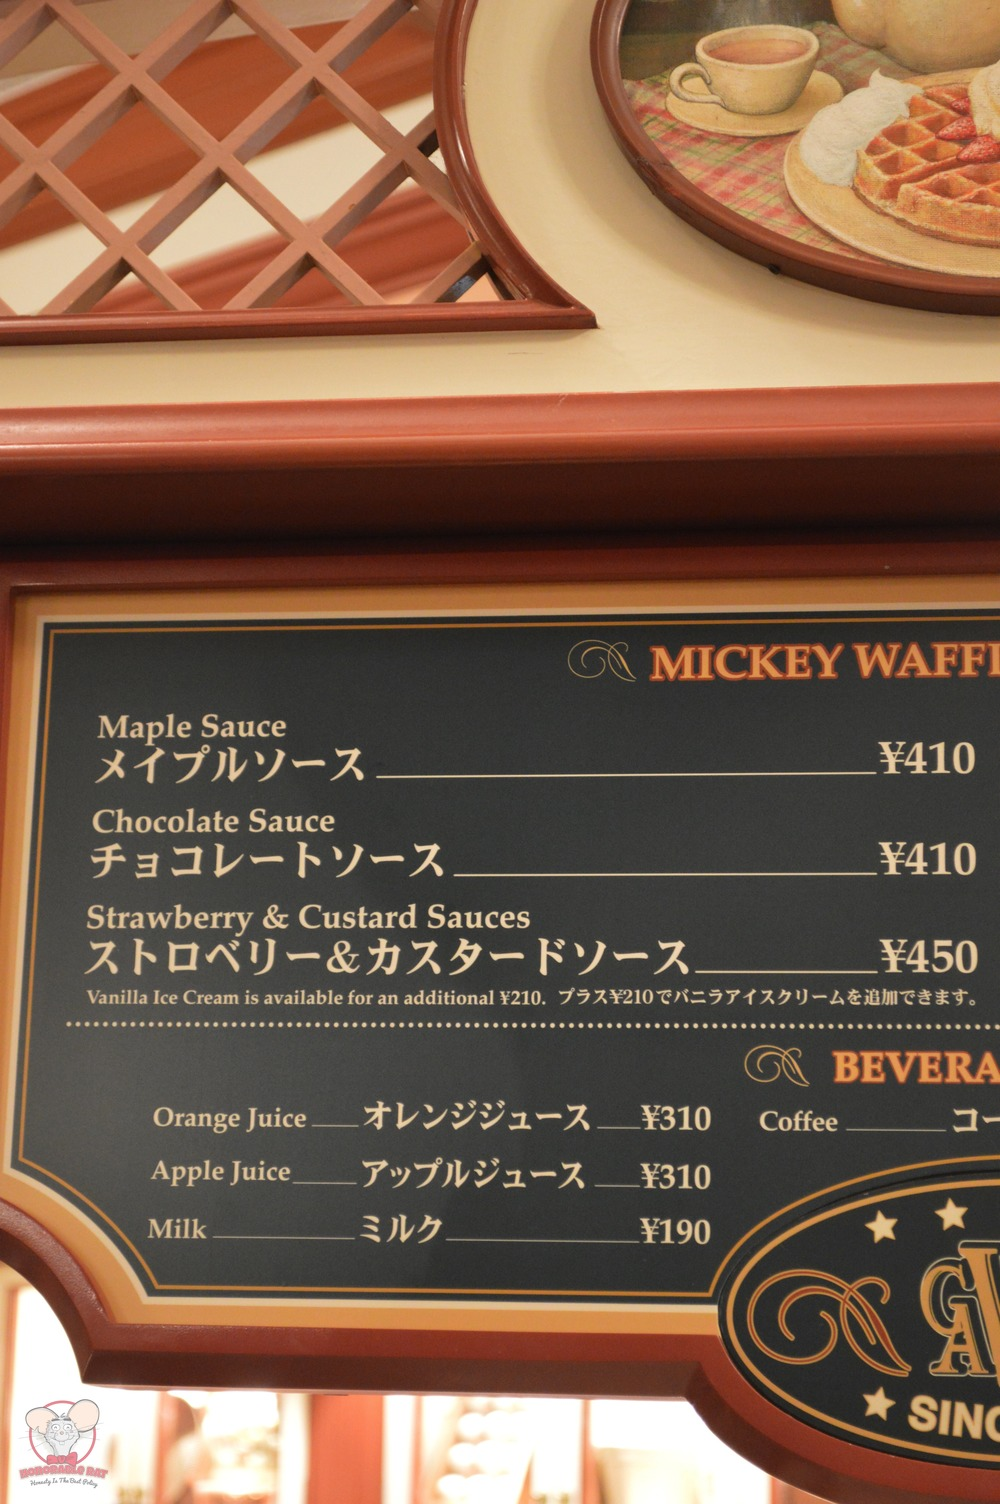 Mickey Waffles Menu